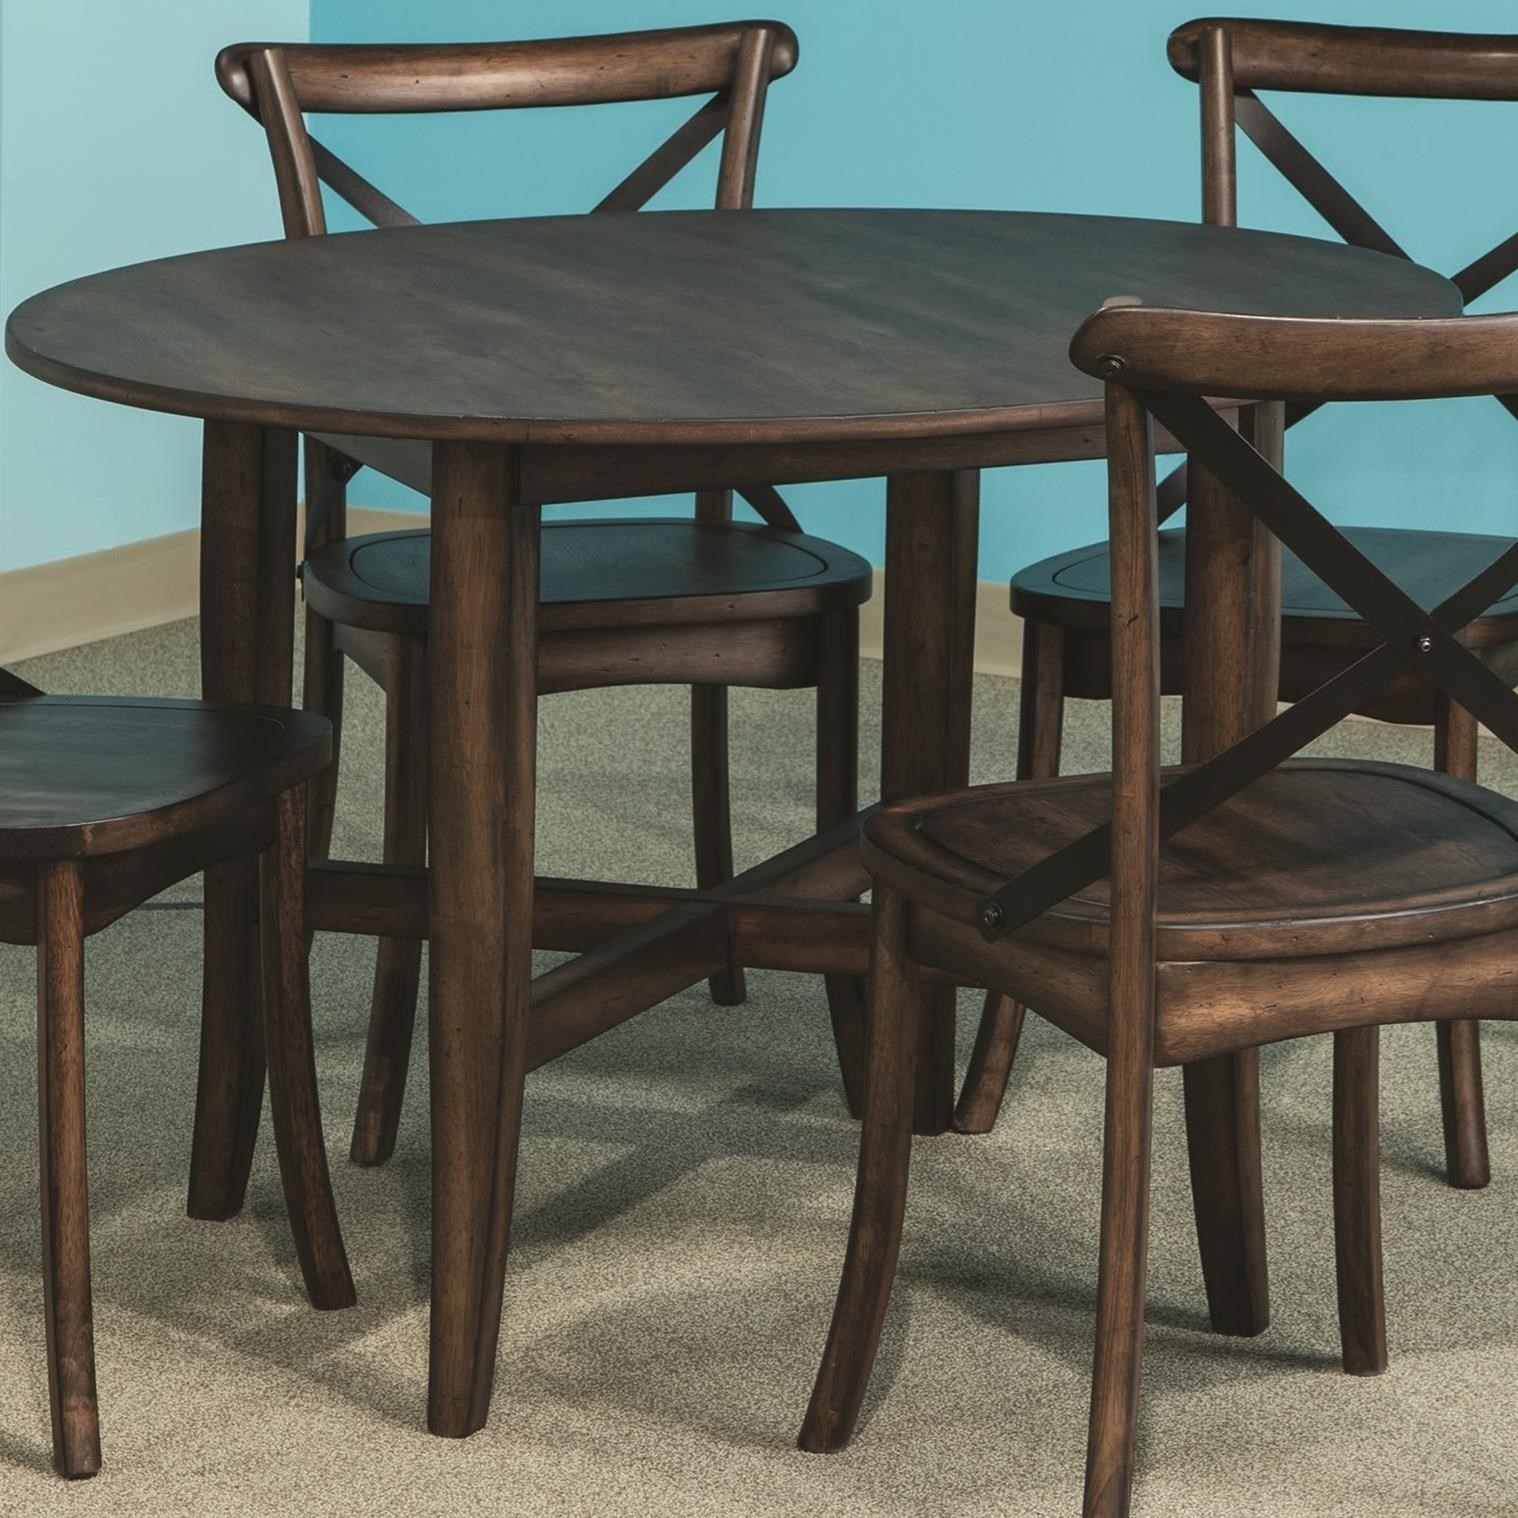 40 round dining table shabby chic round dining table intercon lindsay 40 40